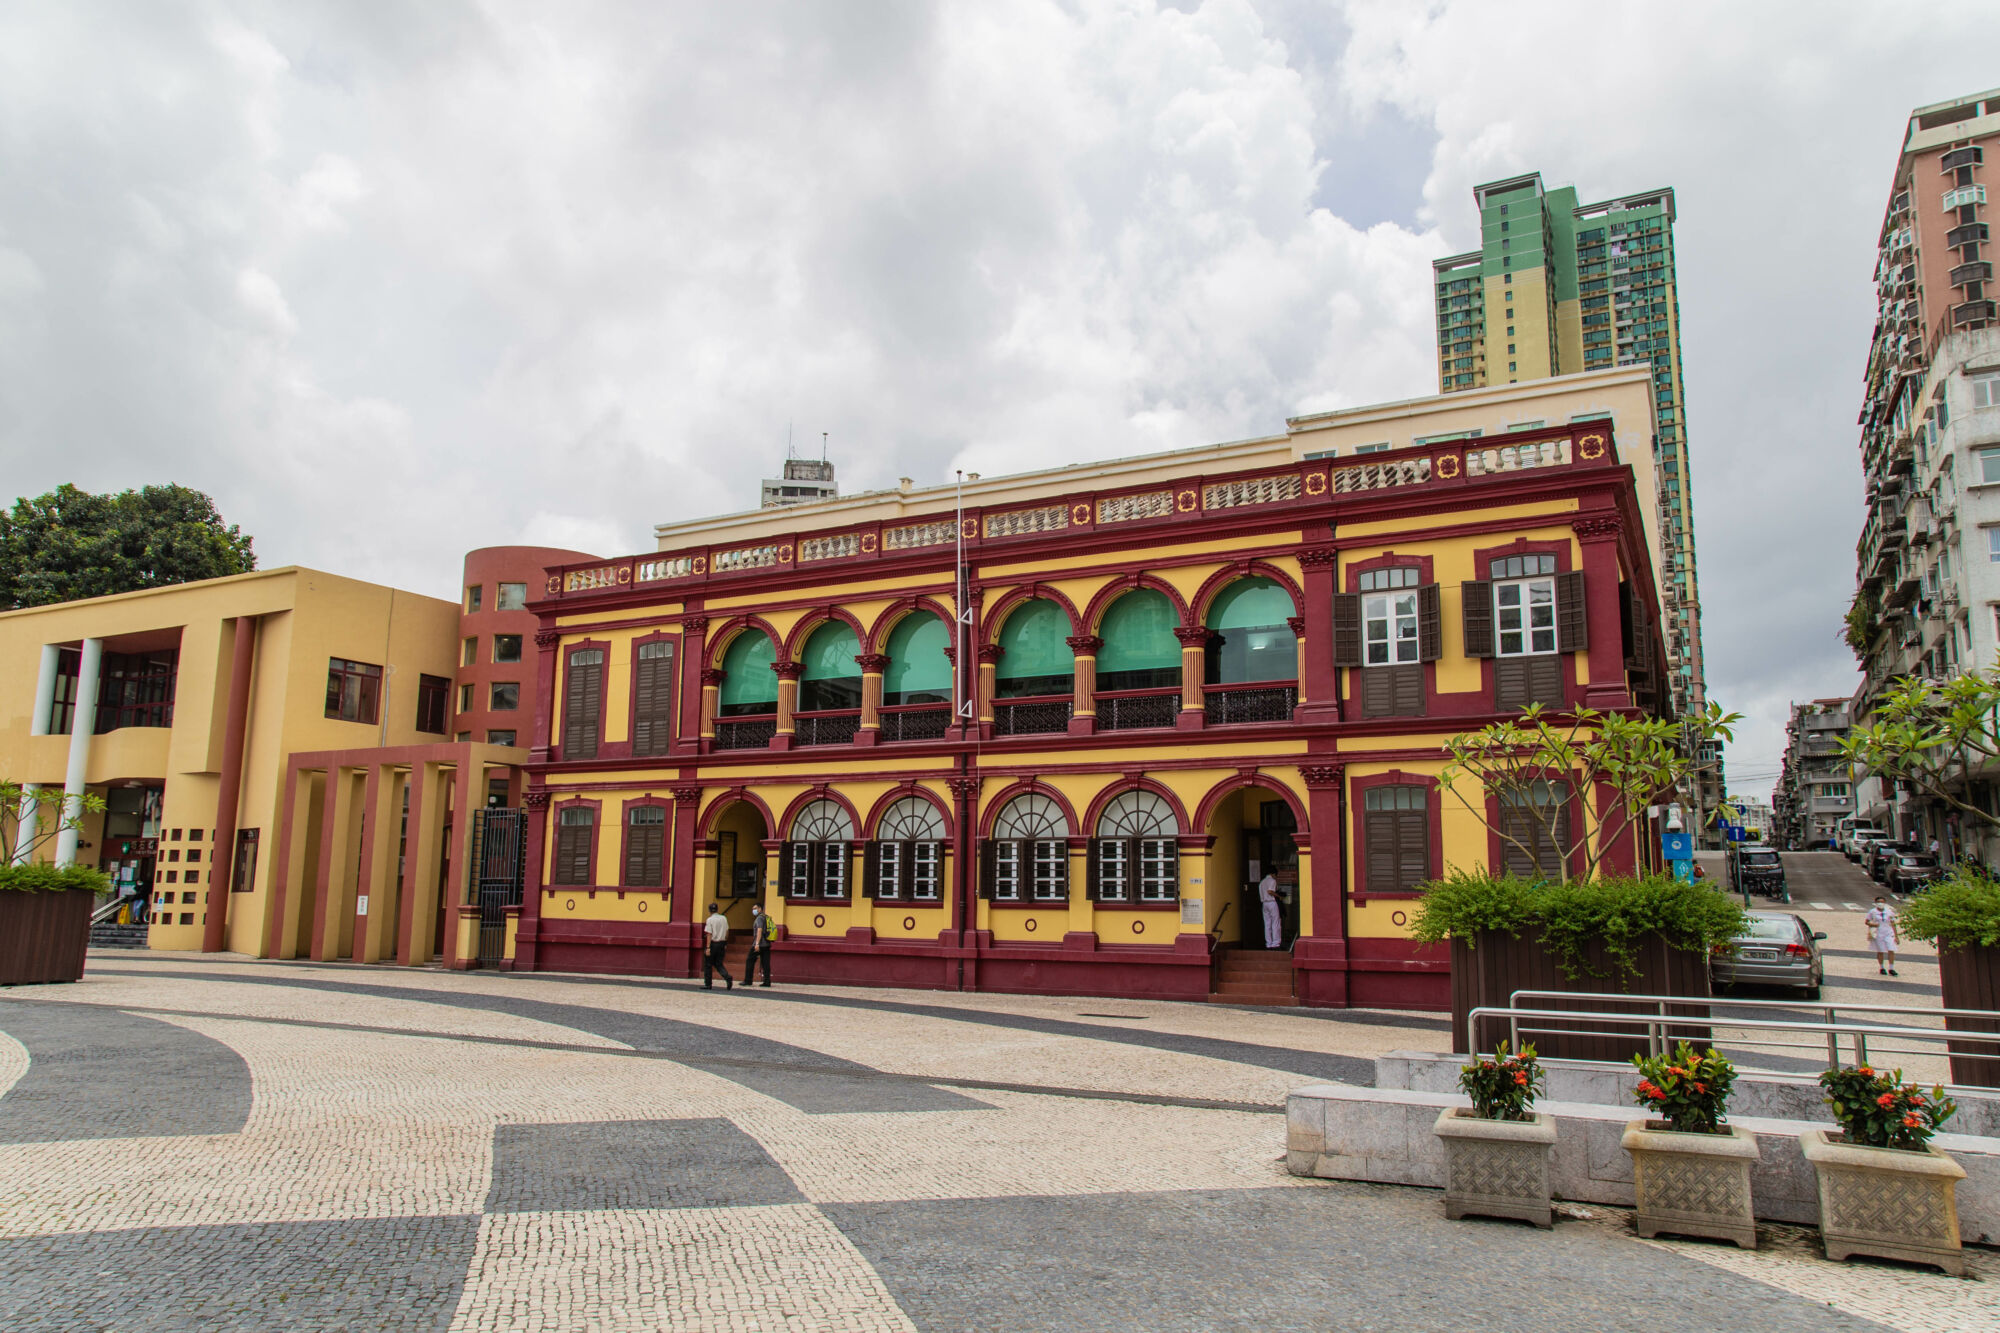 Right view of the exterior of the Macau Historical Archives